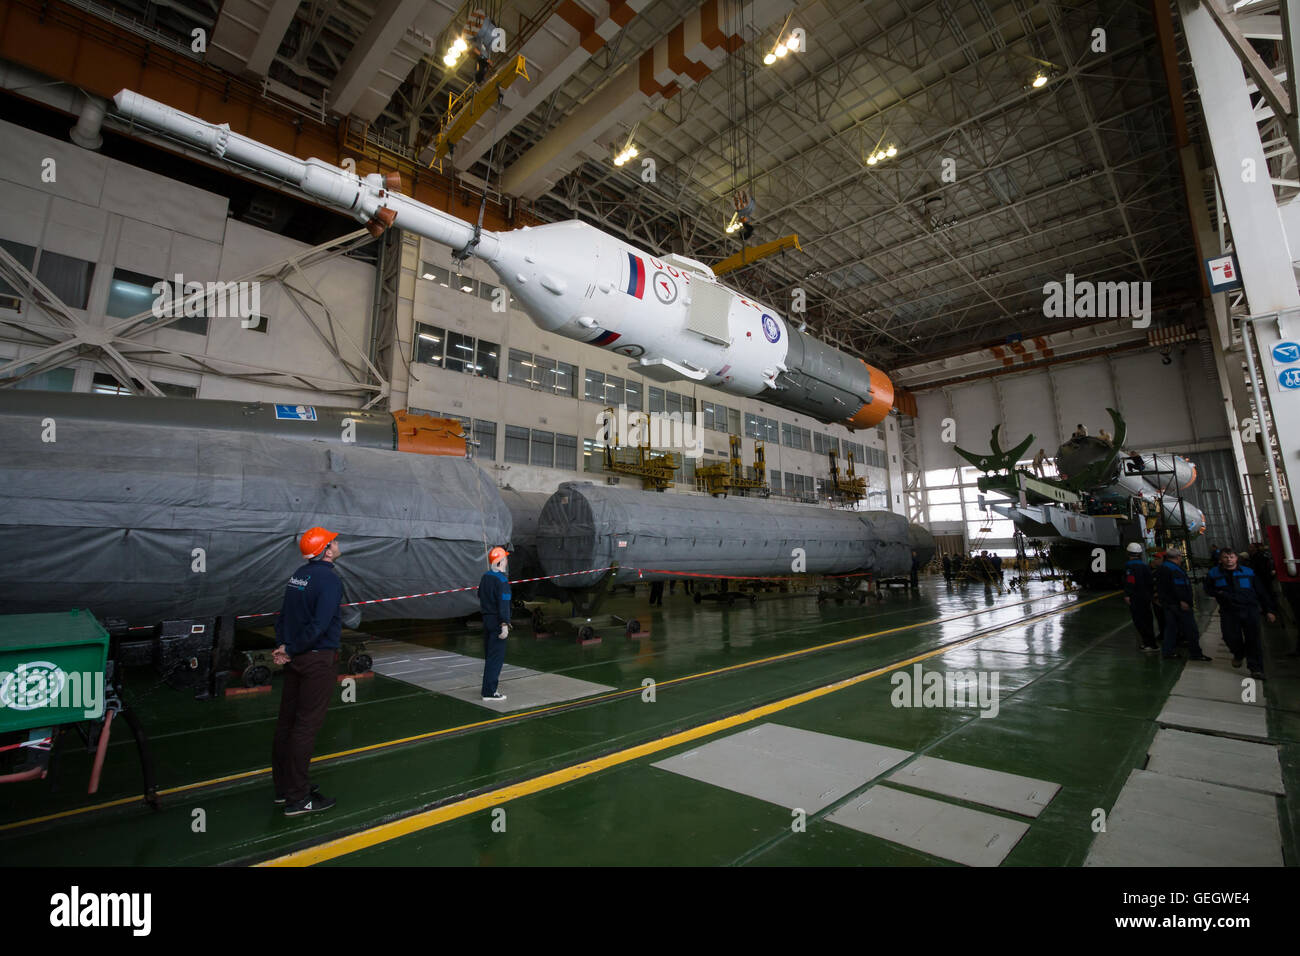 Expedition 47 Soyuz Final Assembly  03150006 - Stock Image